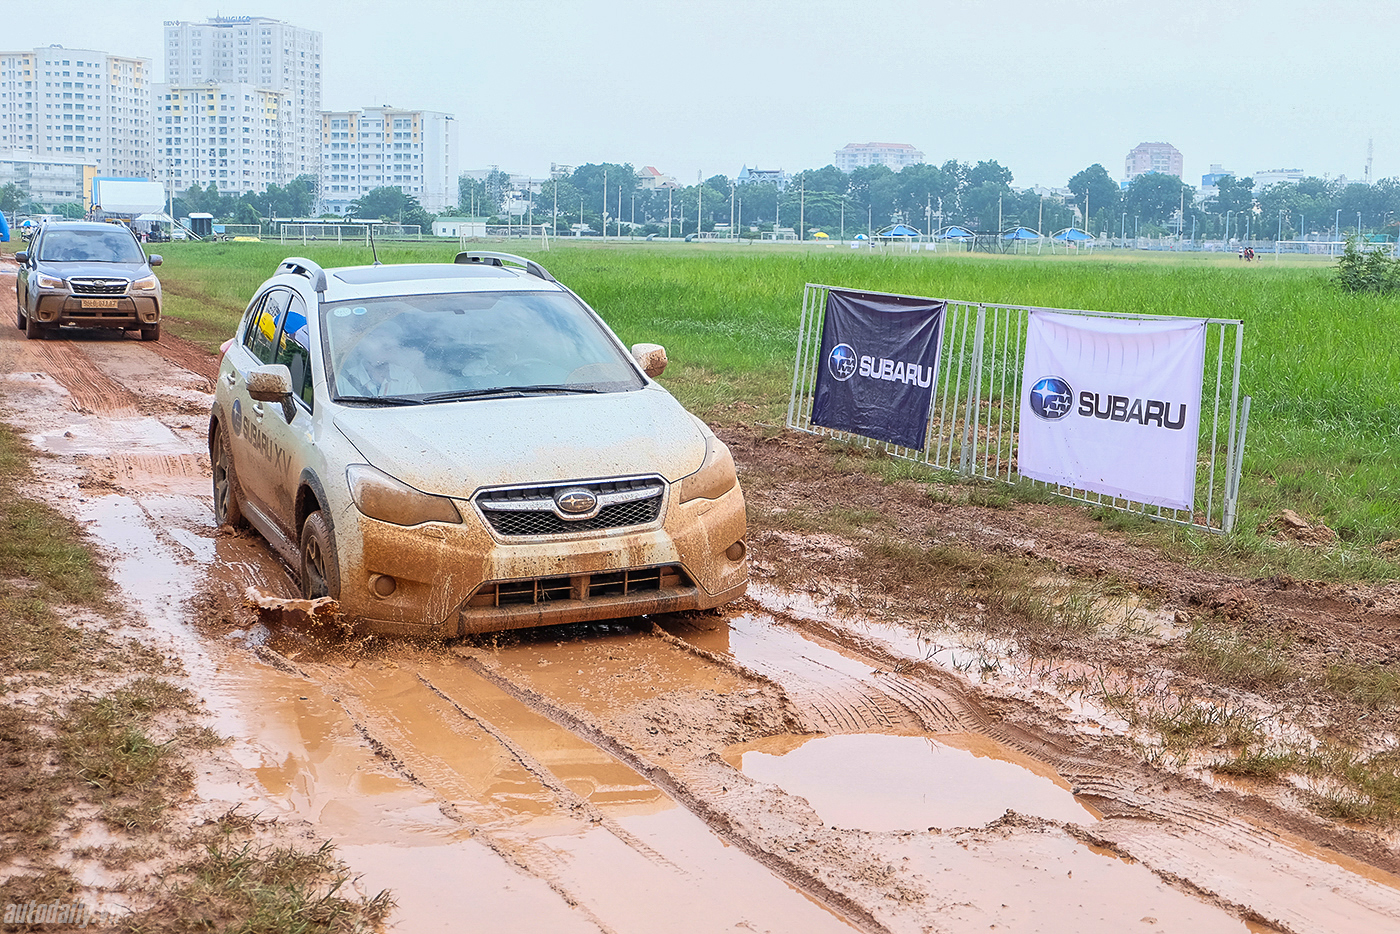 subaru-off-road-16.jpg